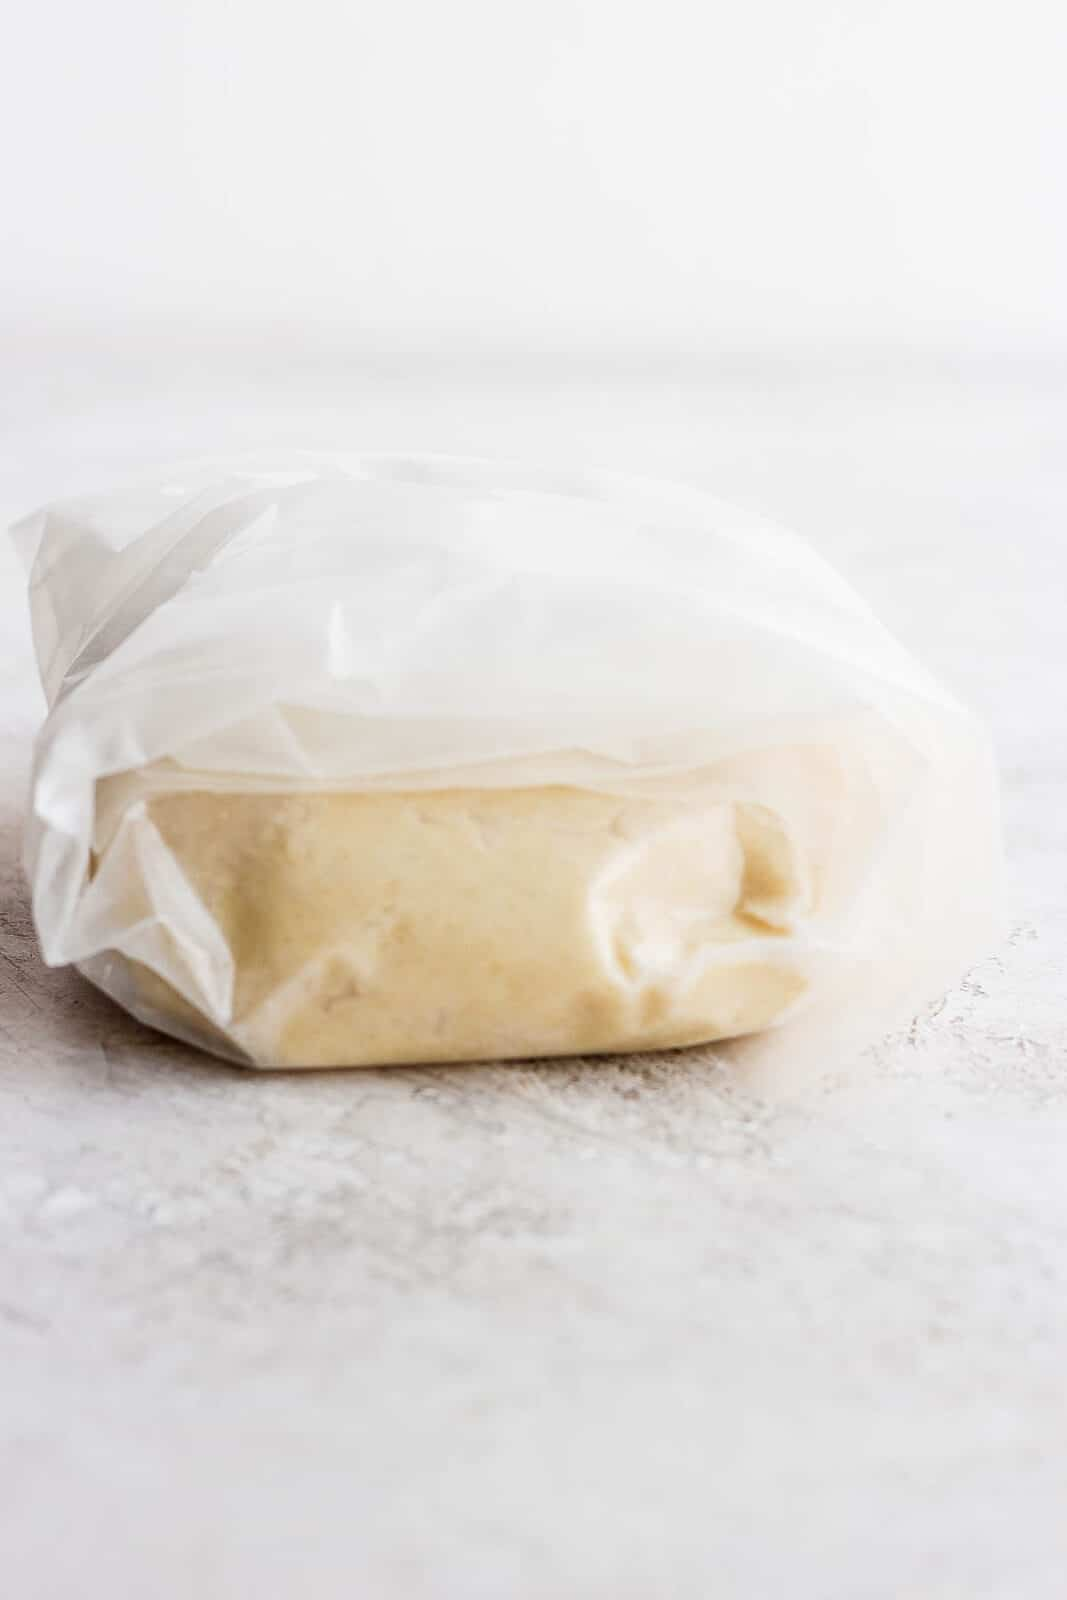 Dough wrapped in wax paper.